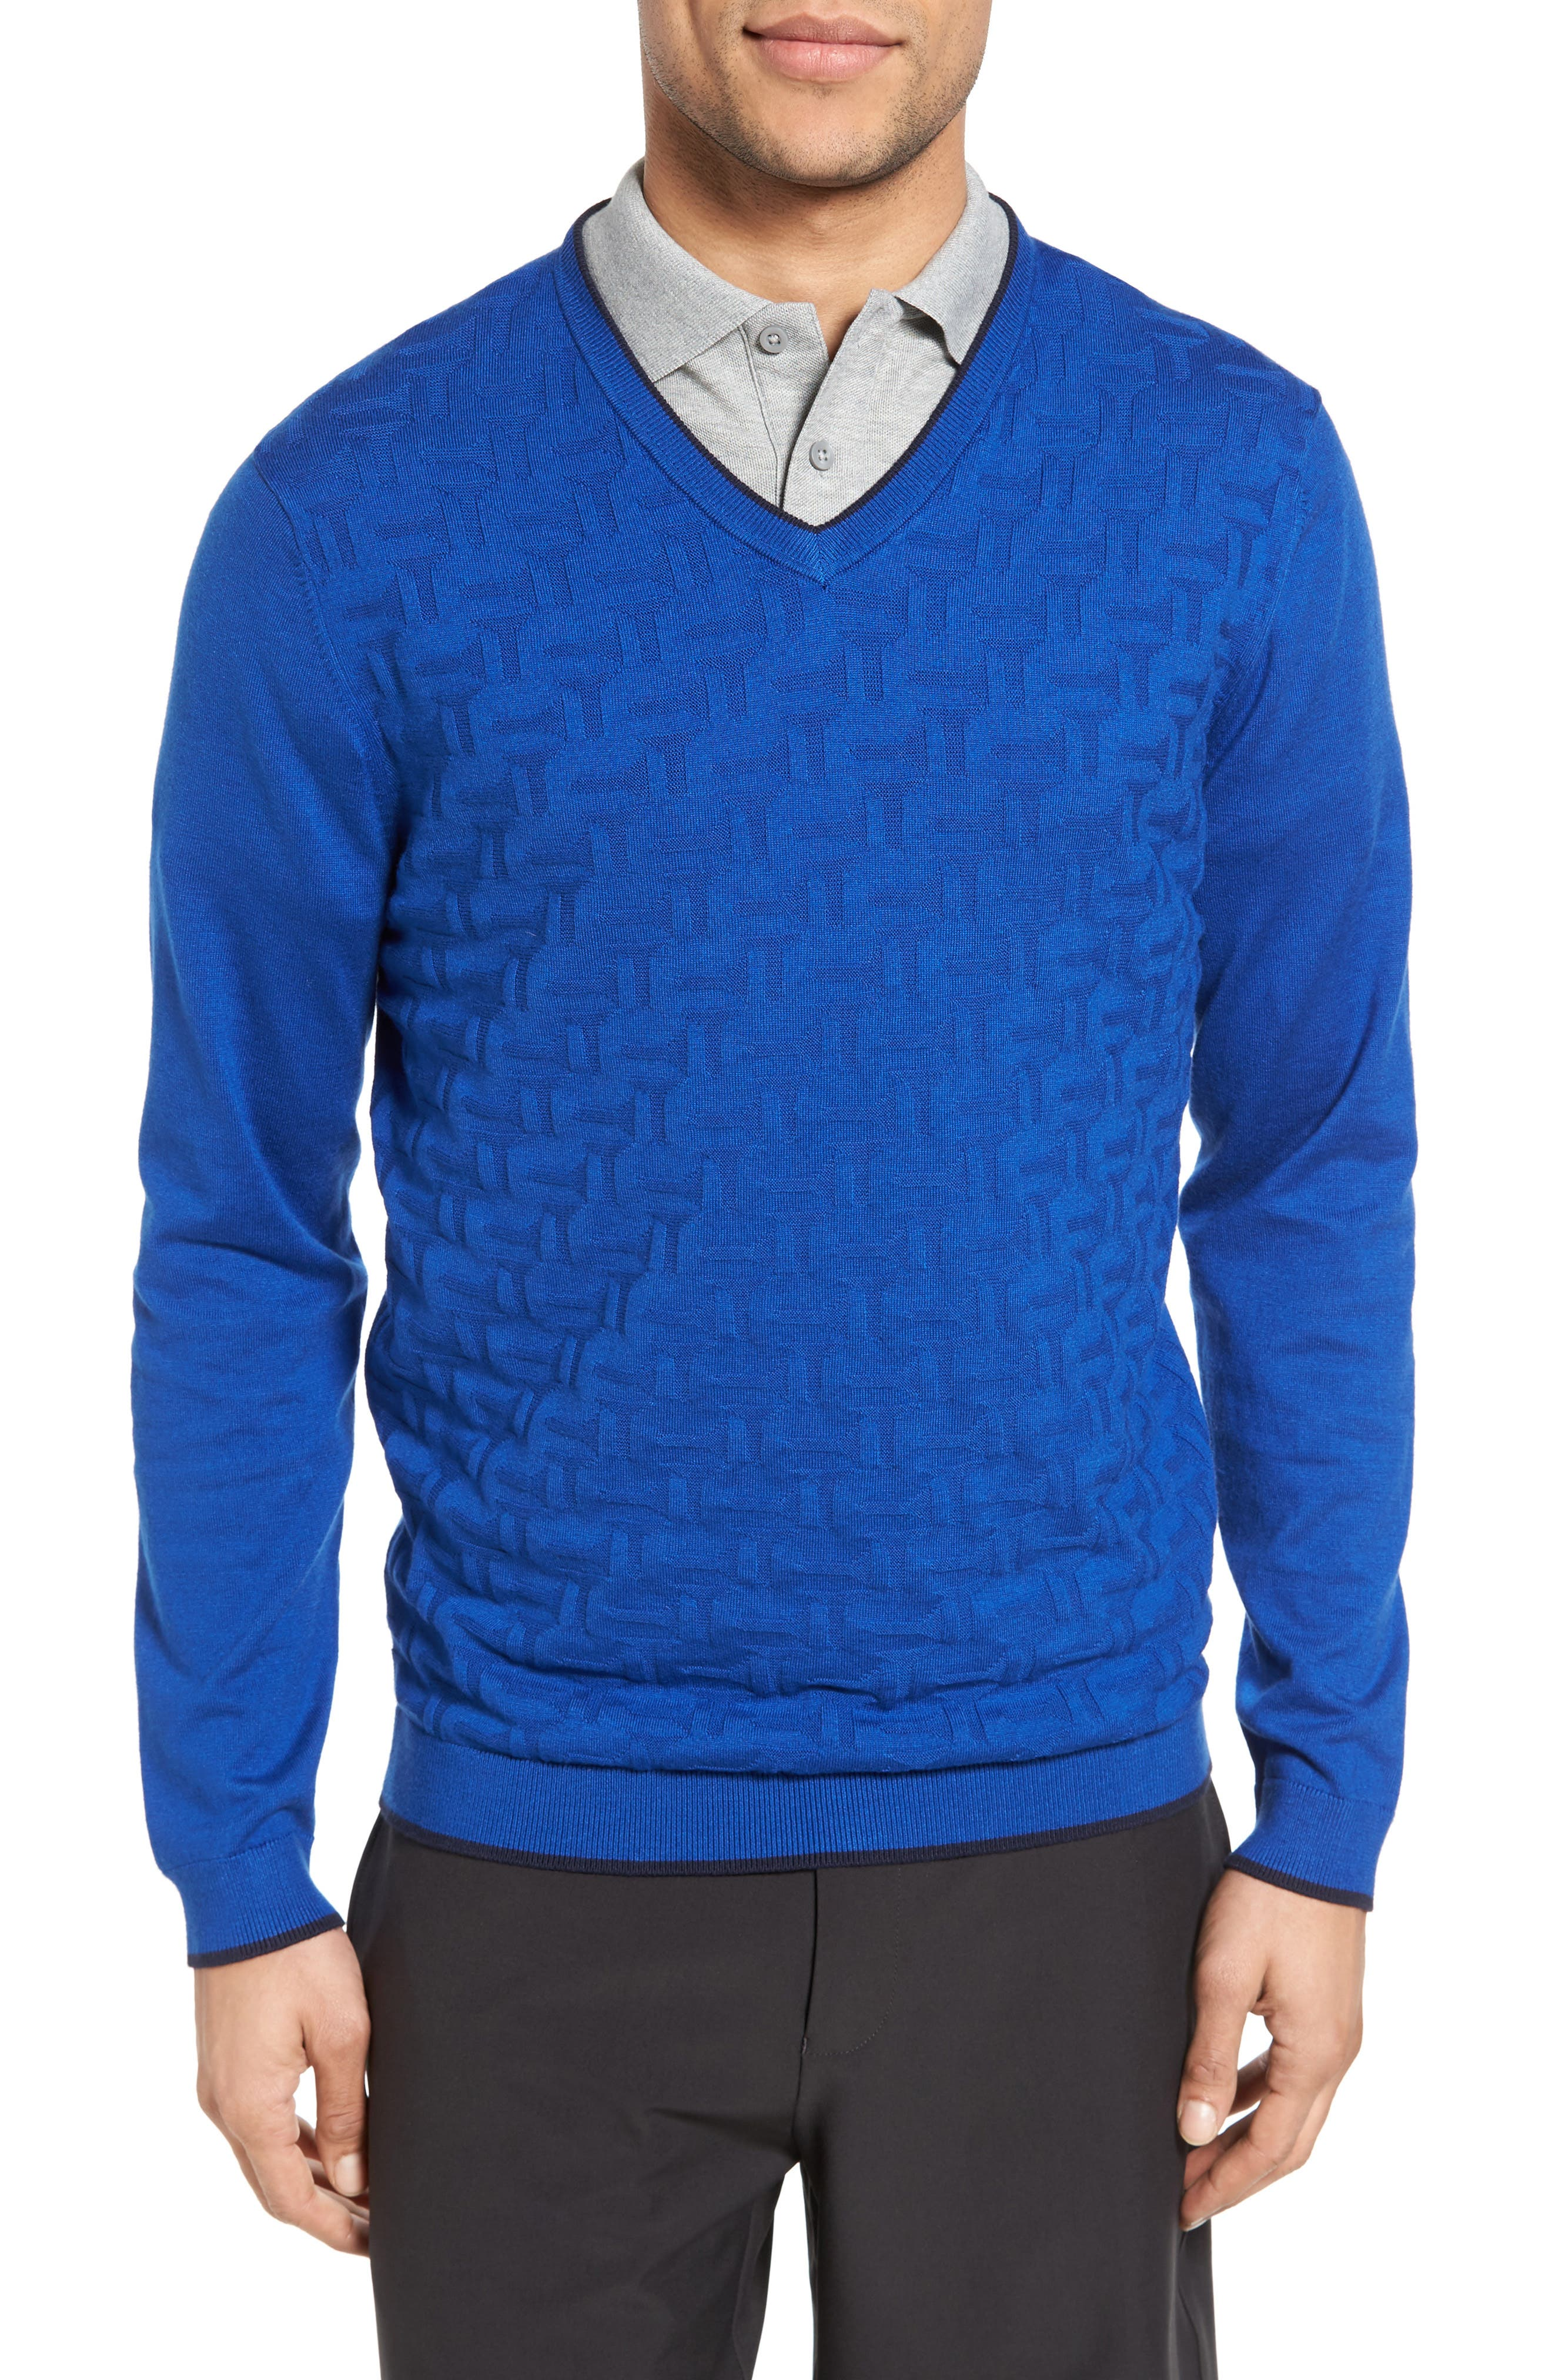 Armstro Tipped Golf Tee Sweater,                         Main,                         color, Blue